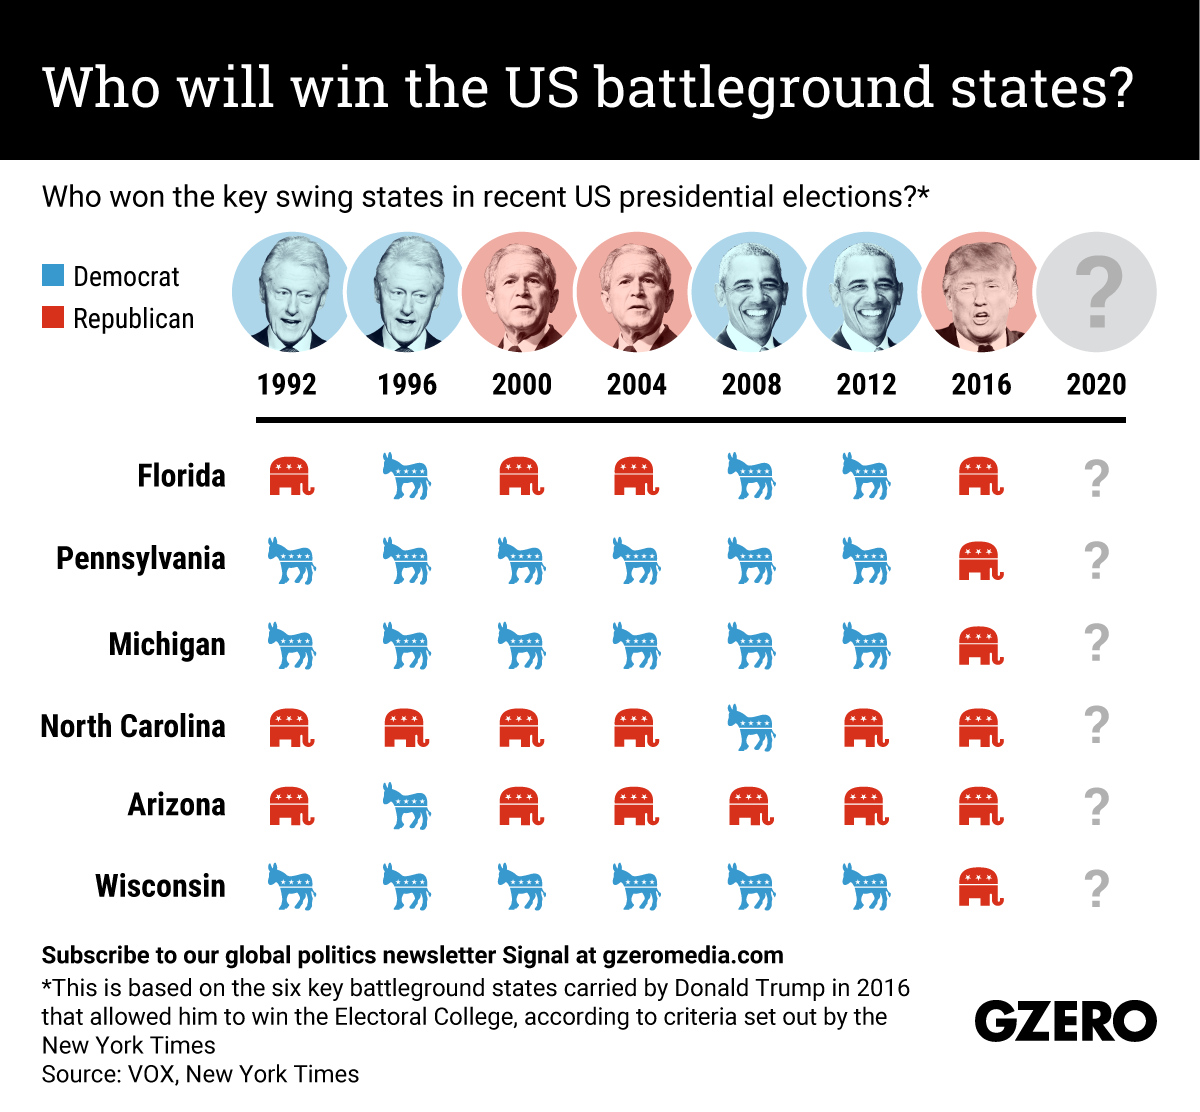 The Graphic Truth: Who will win the US battleground states?